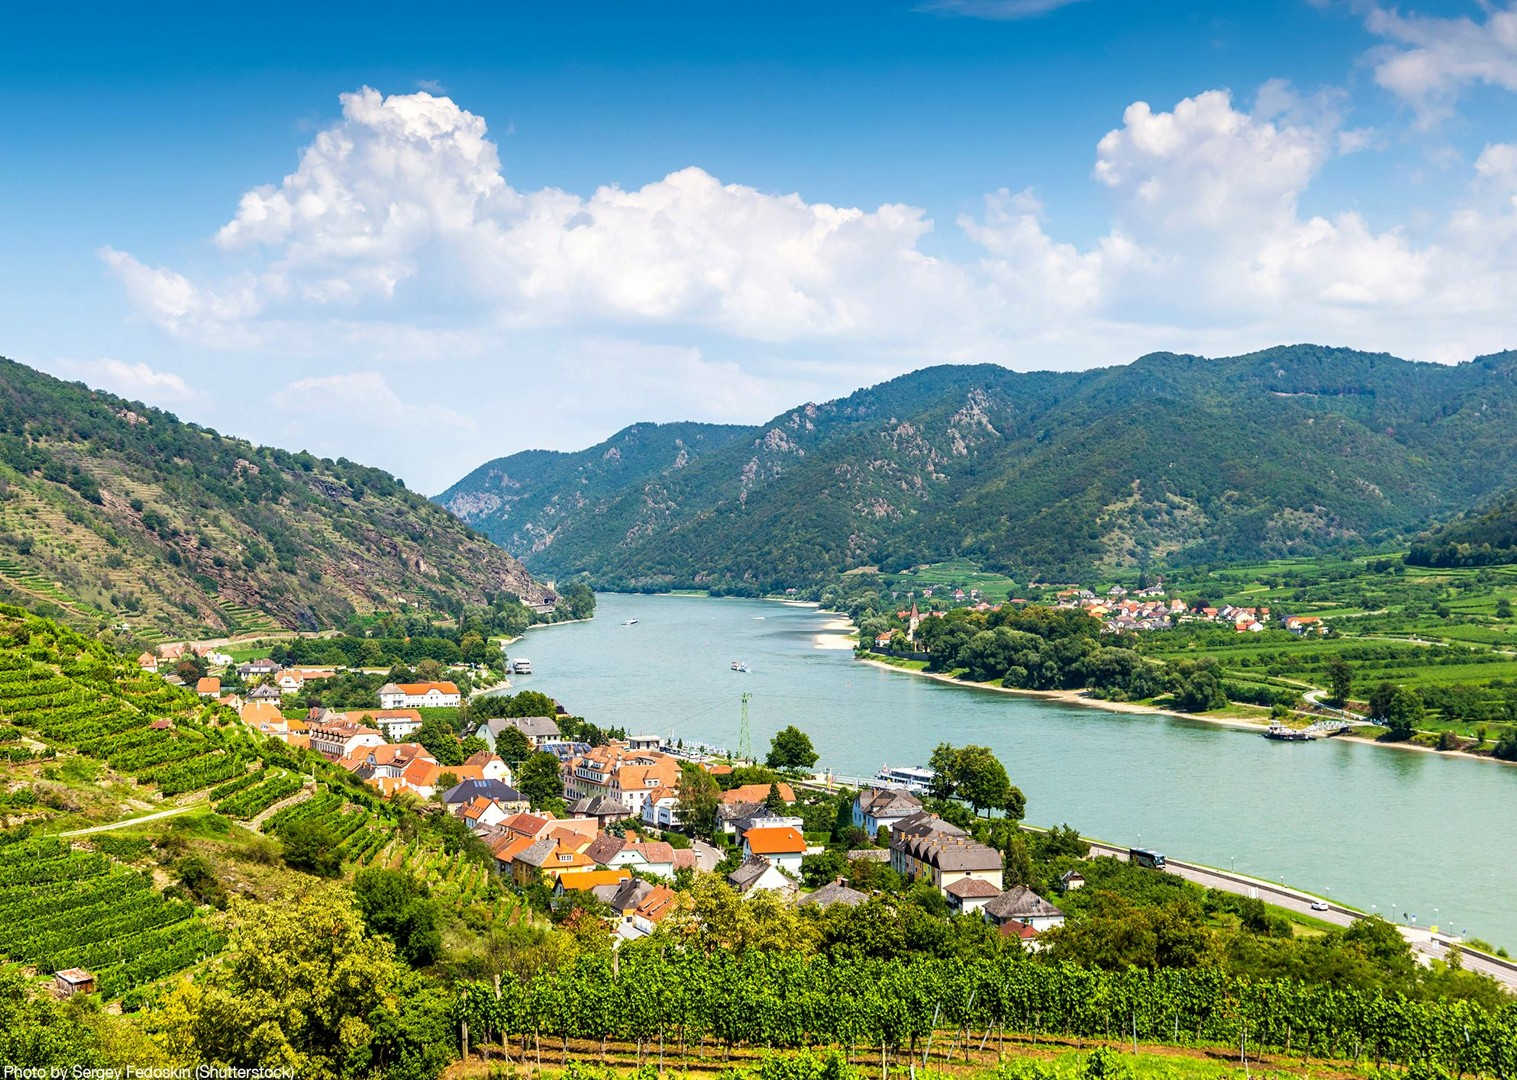 incredible-scenery-danube-river-cycle-tour-self-guided.jpg - Germany and Austria - The Danube Cyclepath (10 Days) - Self-Guided Leisure Cycling Holiday - Leisure Cycling